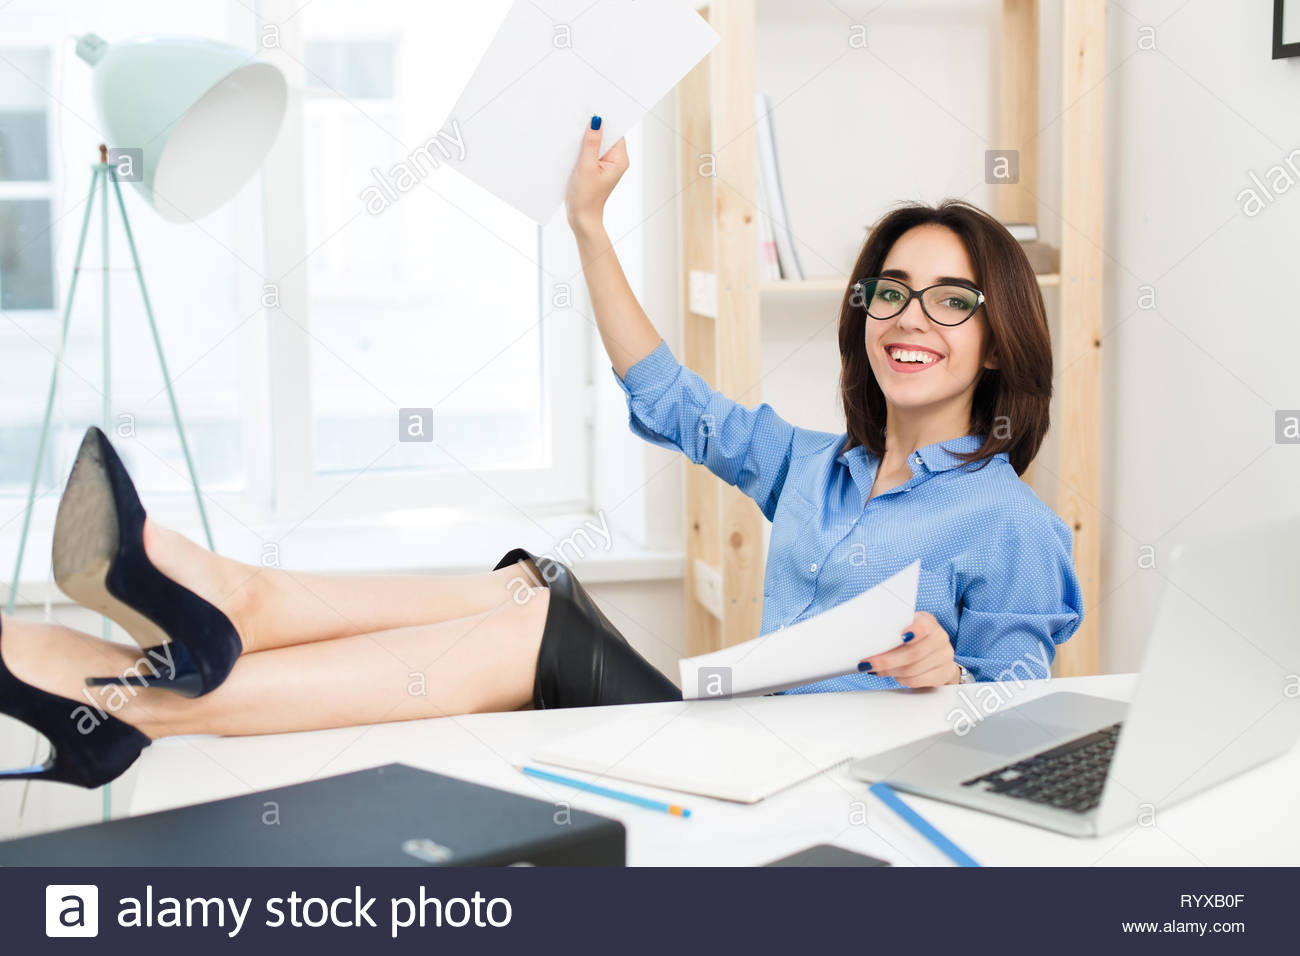 A pretty brunette girl in blue shirt is sitting at the table in office. She crossed her legs on the table. She looks very happy with papers in hands. - Stock Image